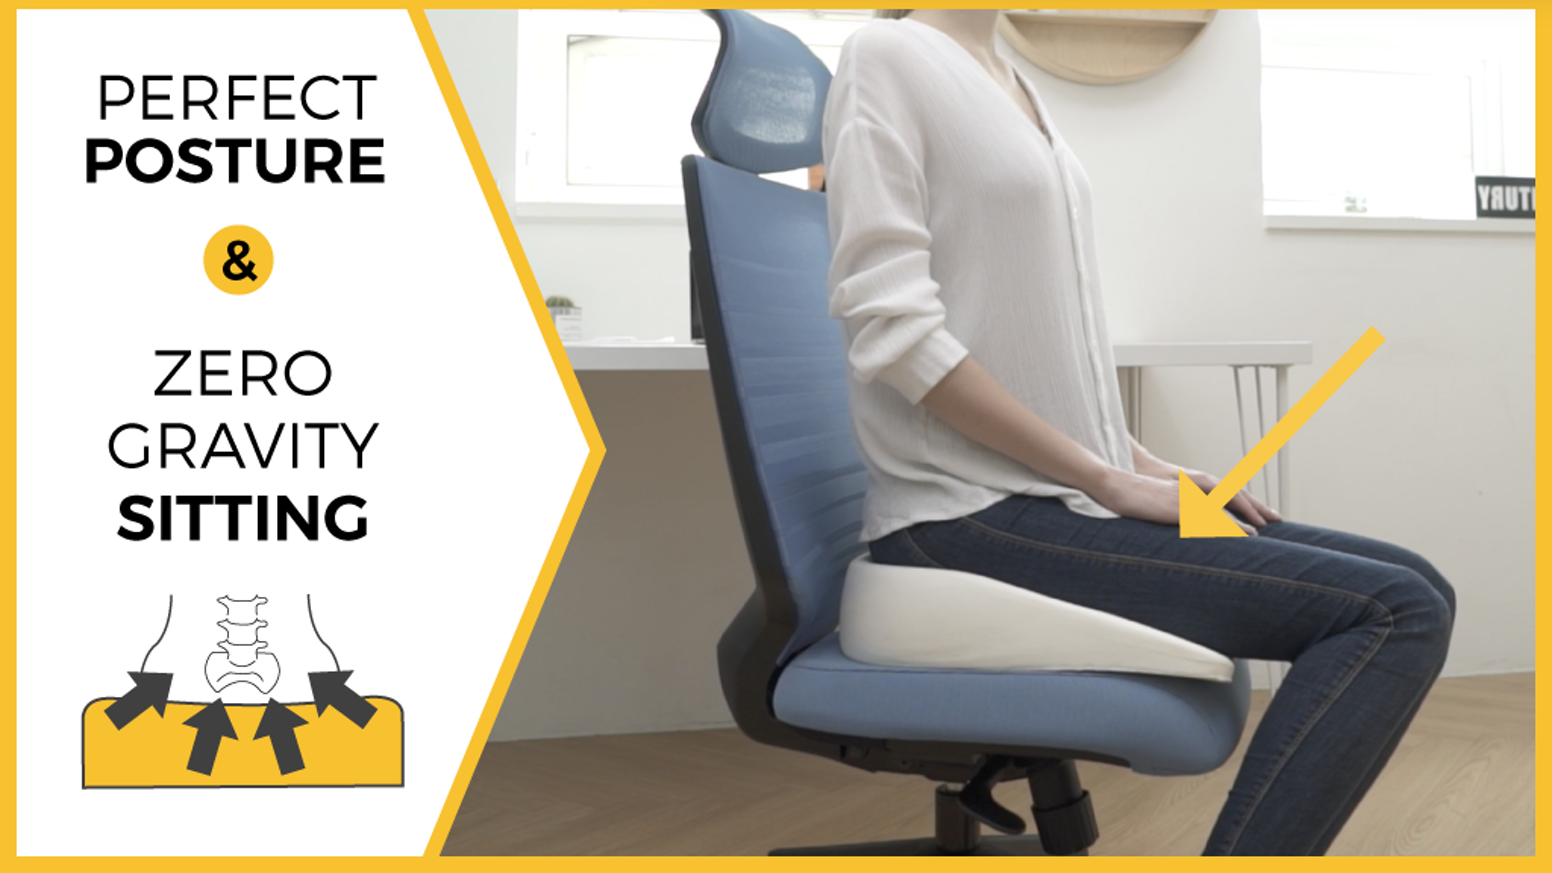 Experience Weightless Sitting With The Most Ergonomic Cushion Ever Reduce Fatigue Release Stress